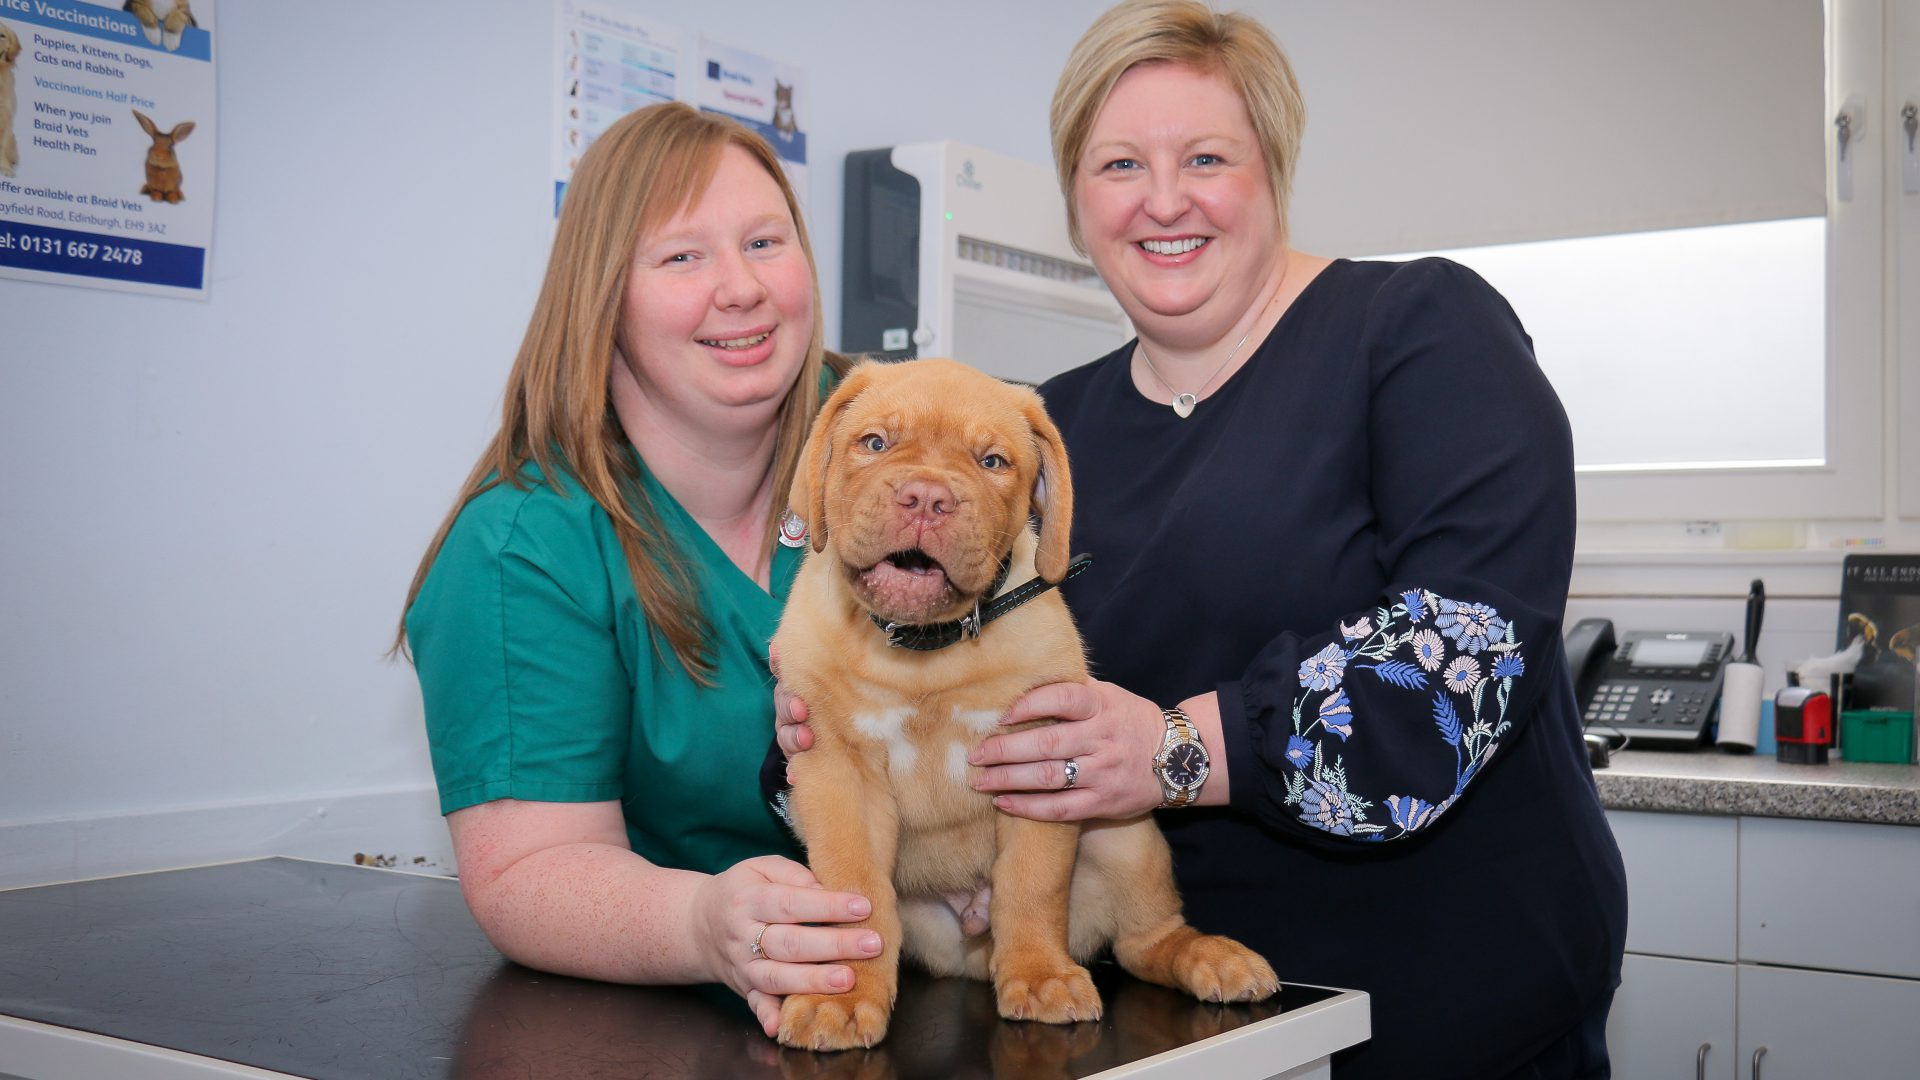 Edinburgh veterinary nurses promoted to the paw-fect jobs